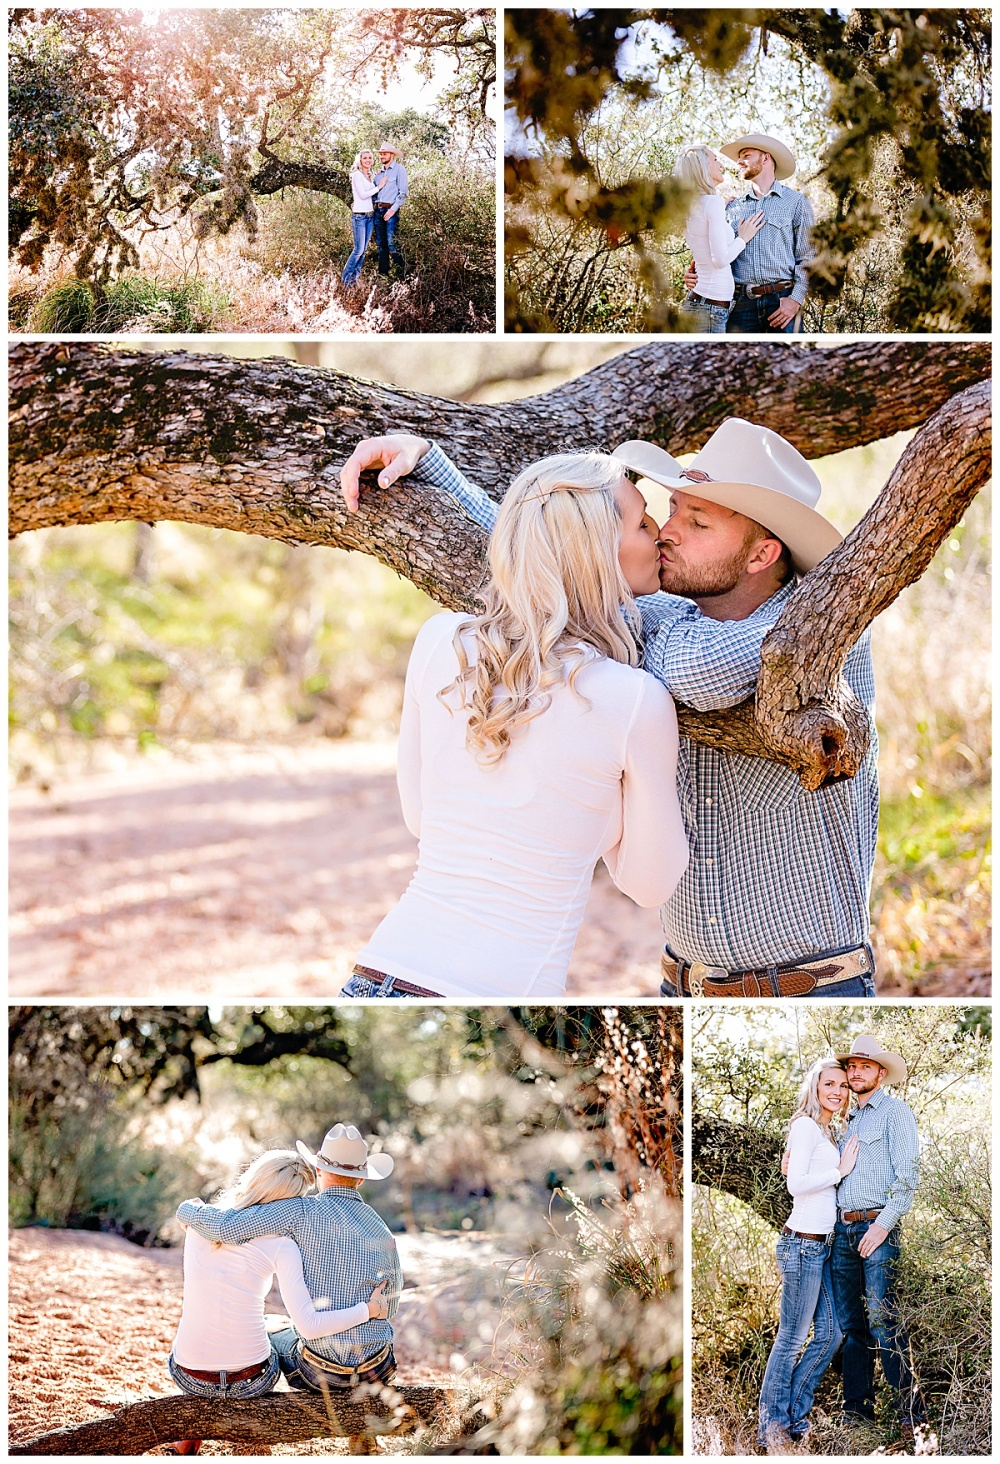 South-Texas-Wedding-Photographer-Engagement-Photos-Enchanted-Rock-Fredericksburg-Sunset-Couples-Carly-Barton-Photography_0012.jpg